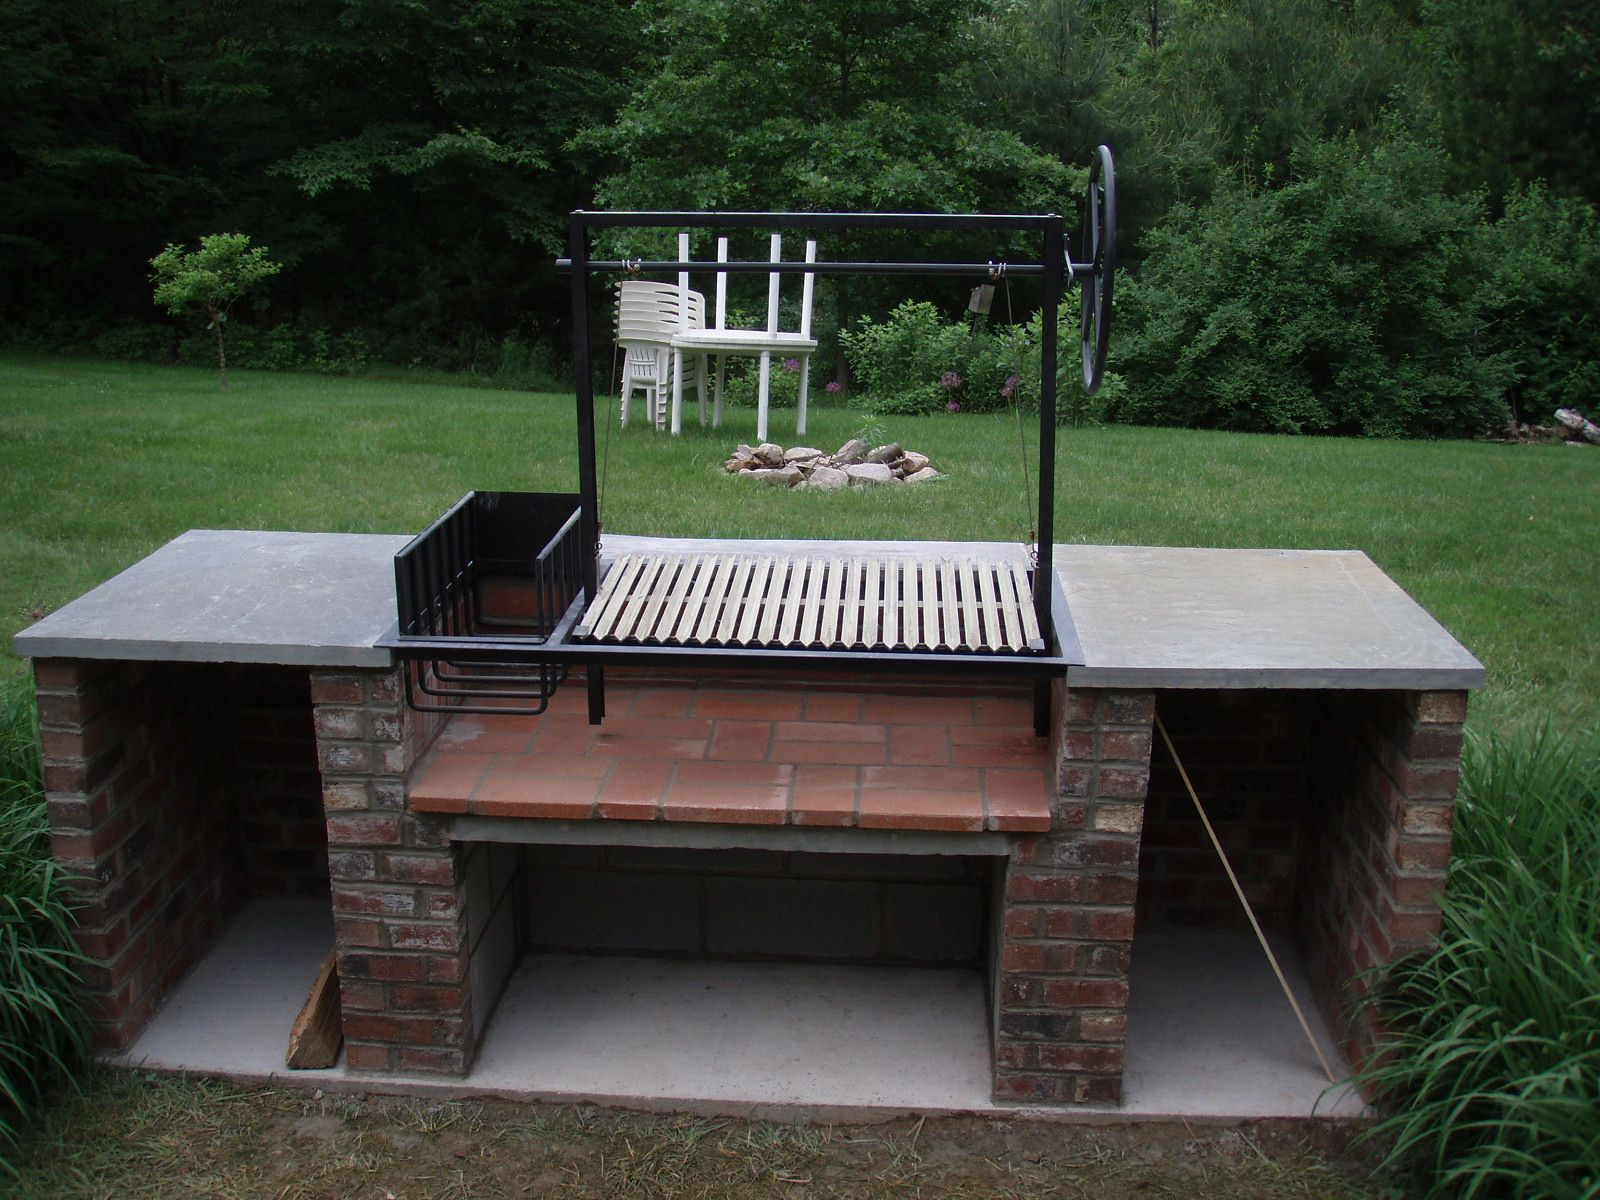 Argentine grill kit real garden diy pinterest - Barbecue argentin ...